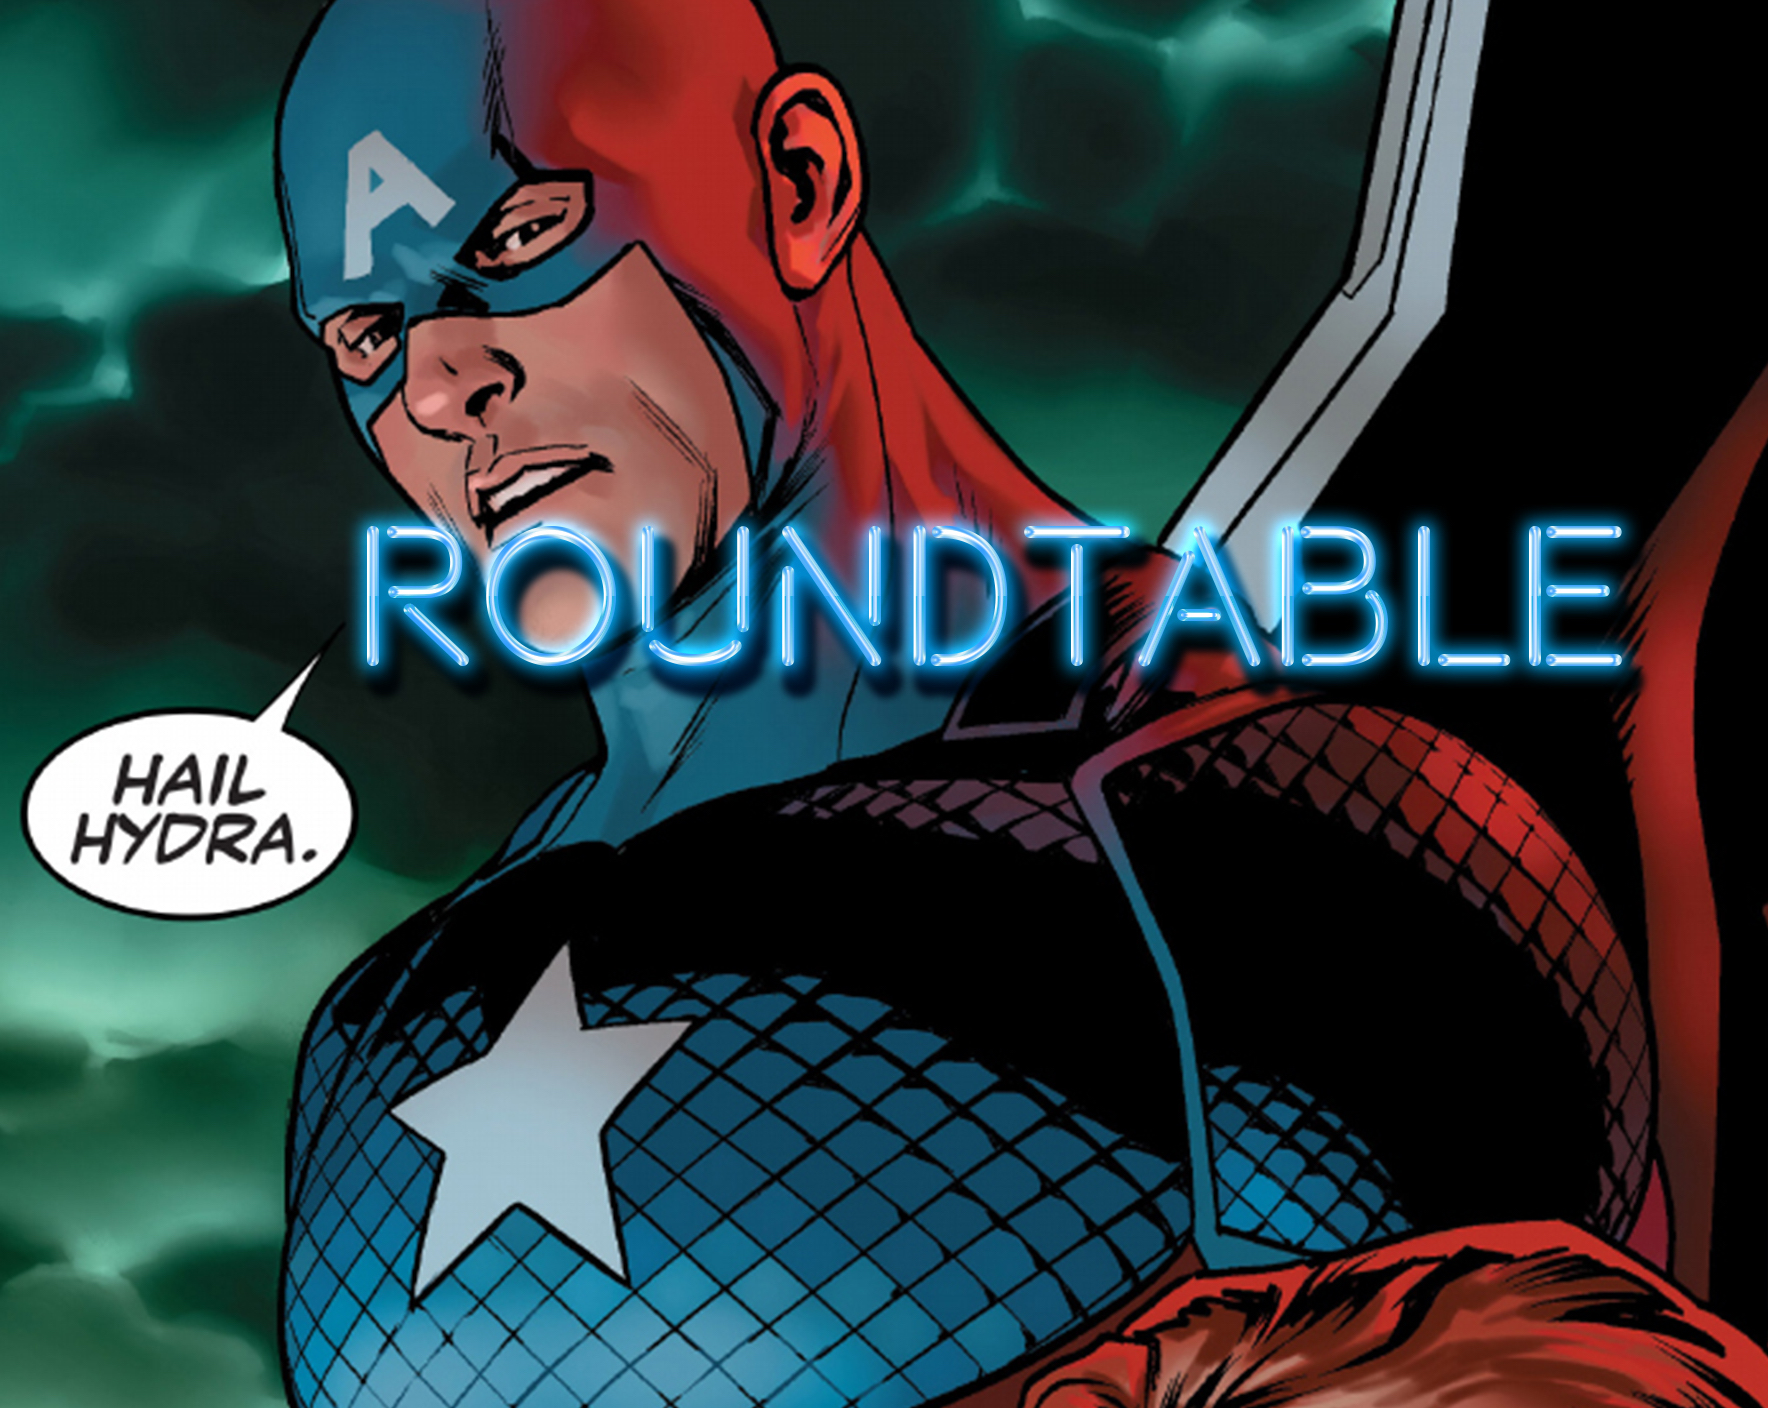 Politics. It seems like you just can't get away from politics these days. It's all over the news, in our science, and even in our comic books! It always has been, to some degree, and Marvel's Captain America series has often led the charge on social issues and hot-button topics.